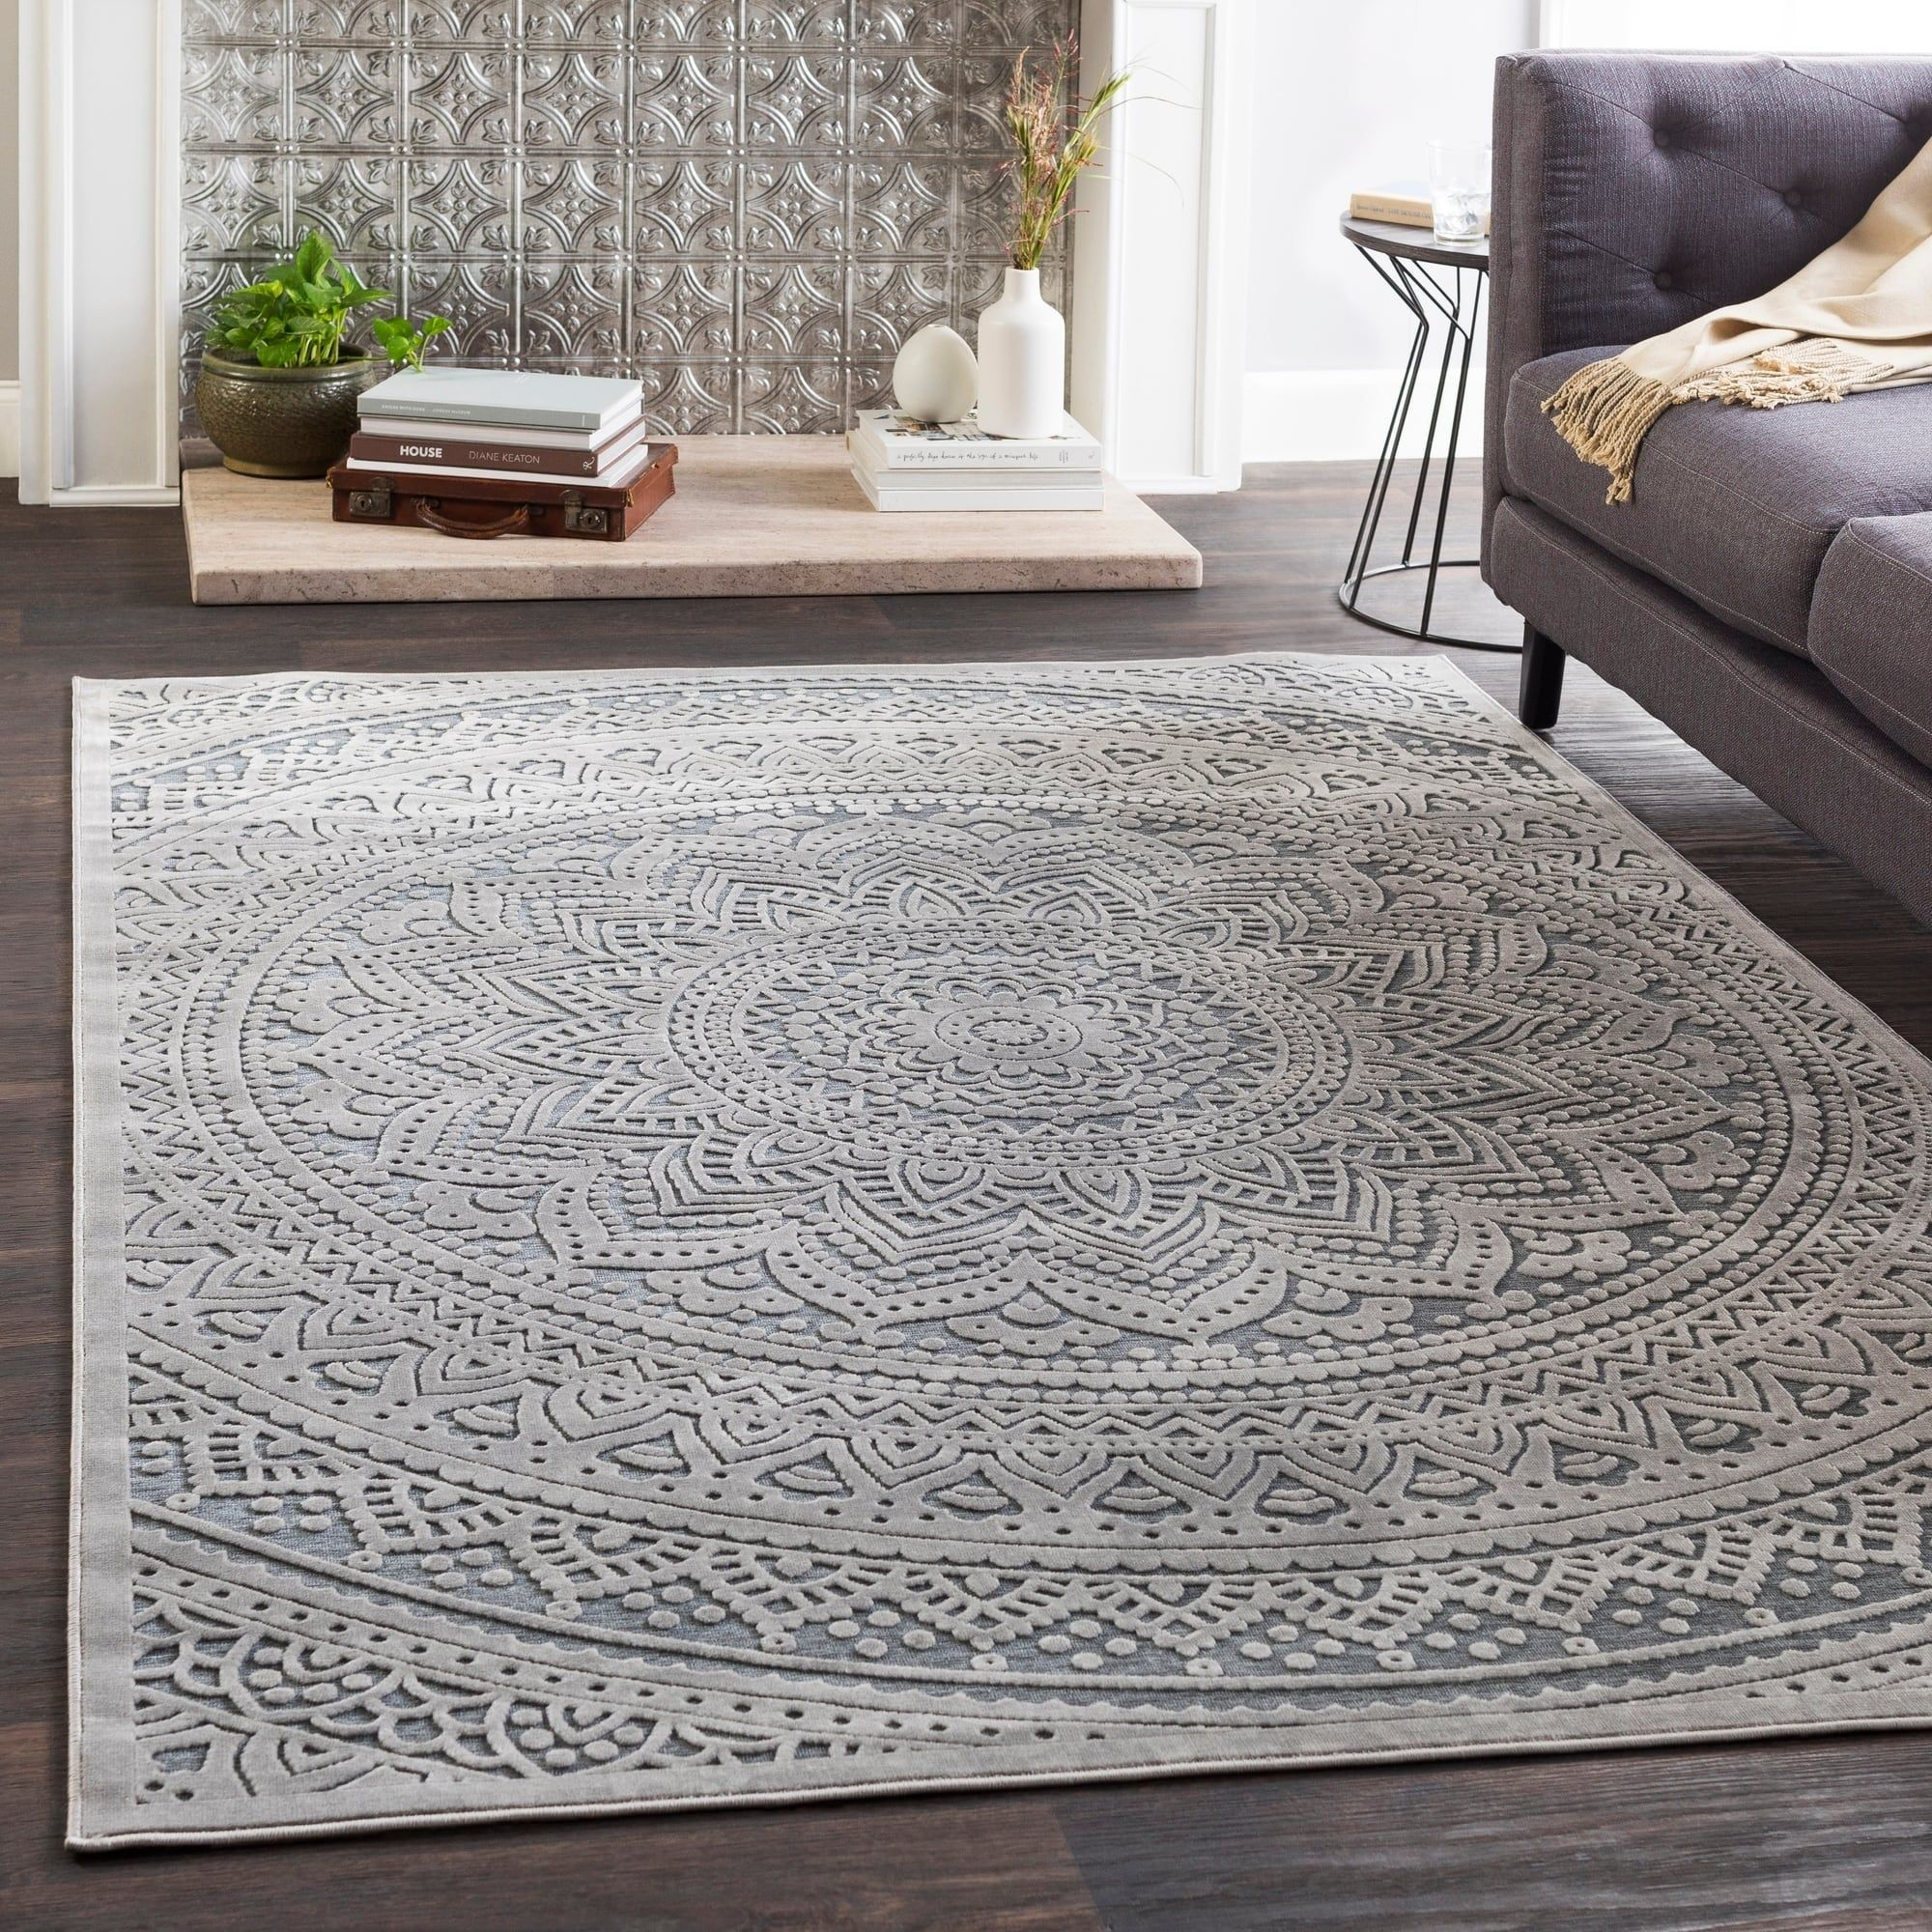 Buy 7x9 10x14 Rugs Online At Overstock Com Our Best Area Rugs Deals Area Rugs Rugs Grey Rugs